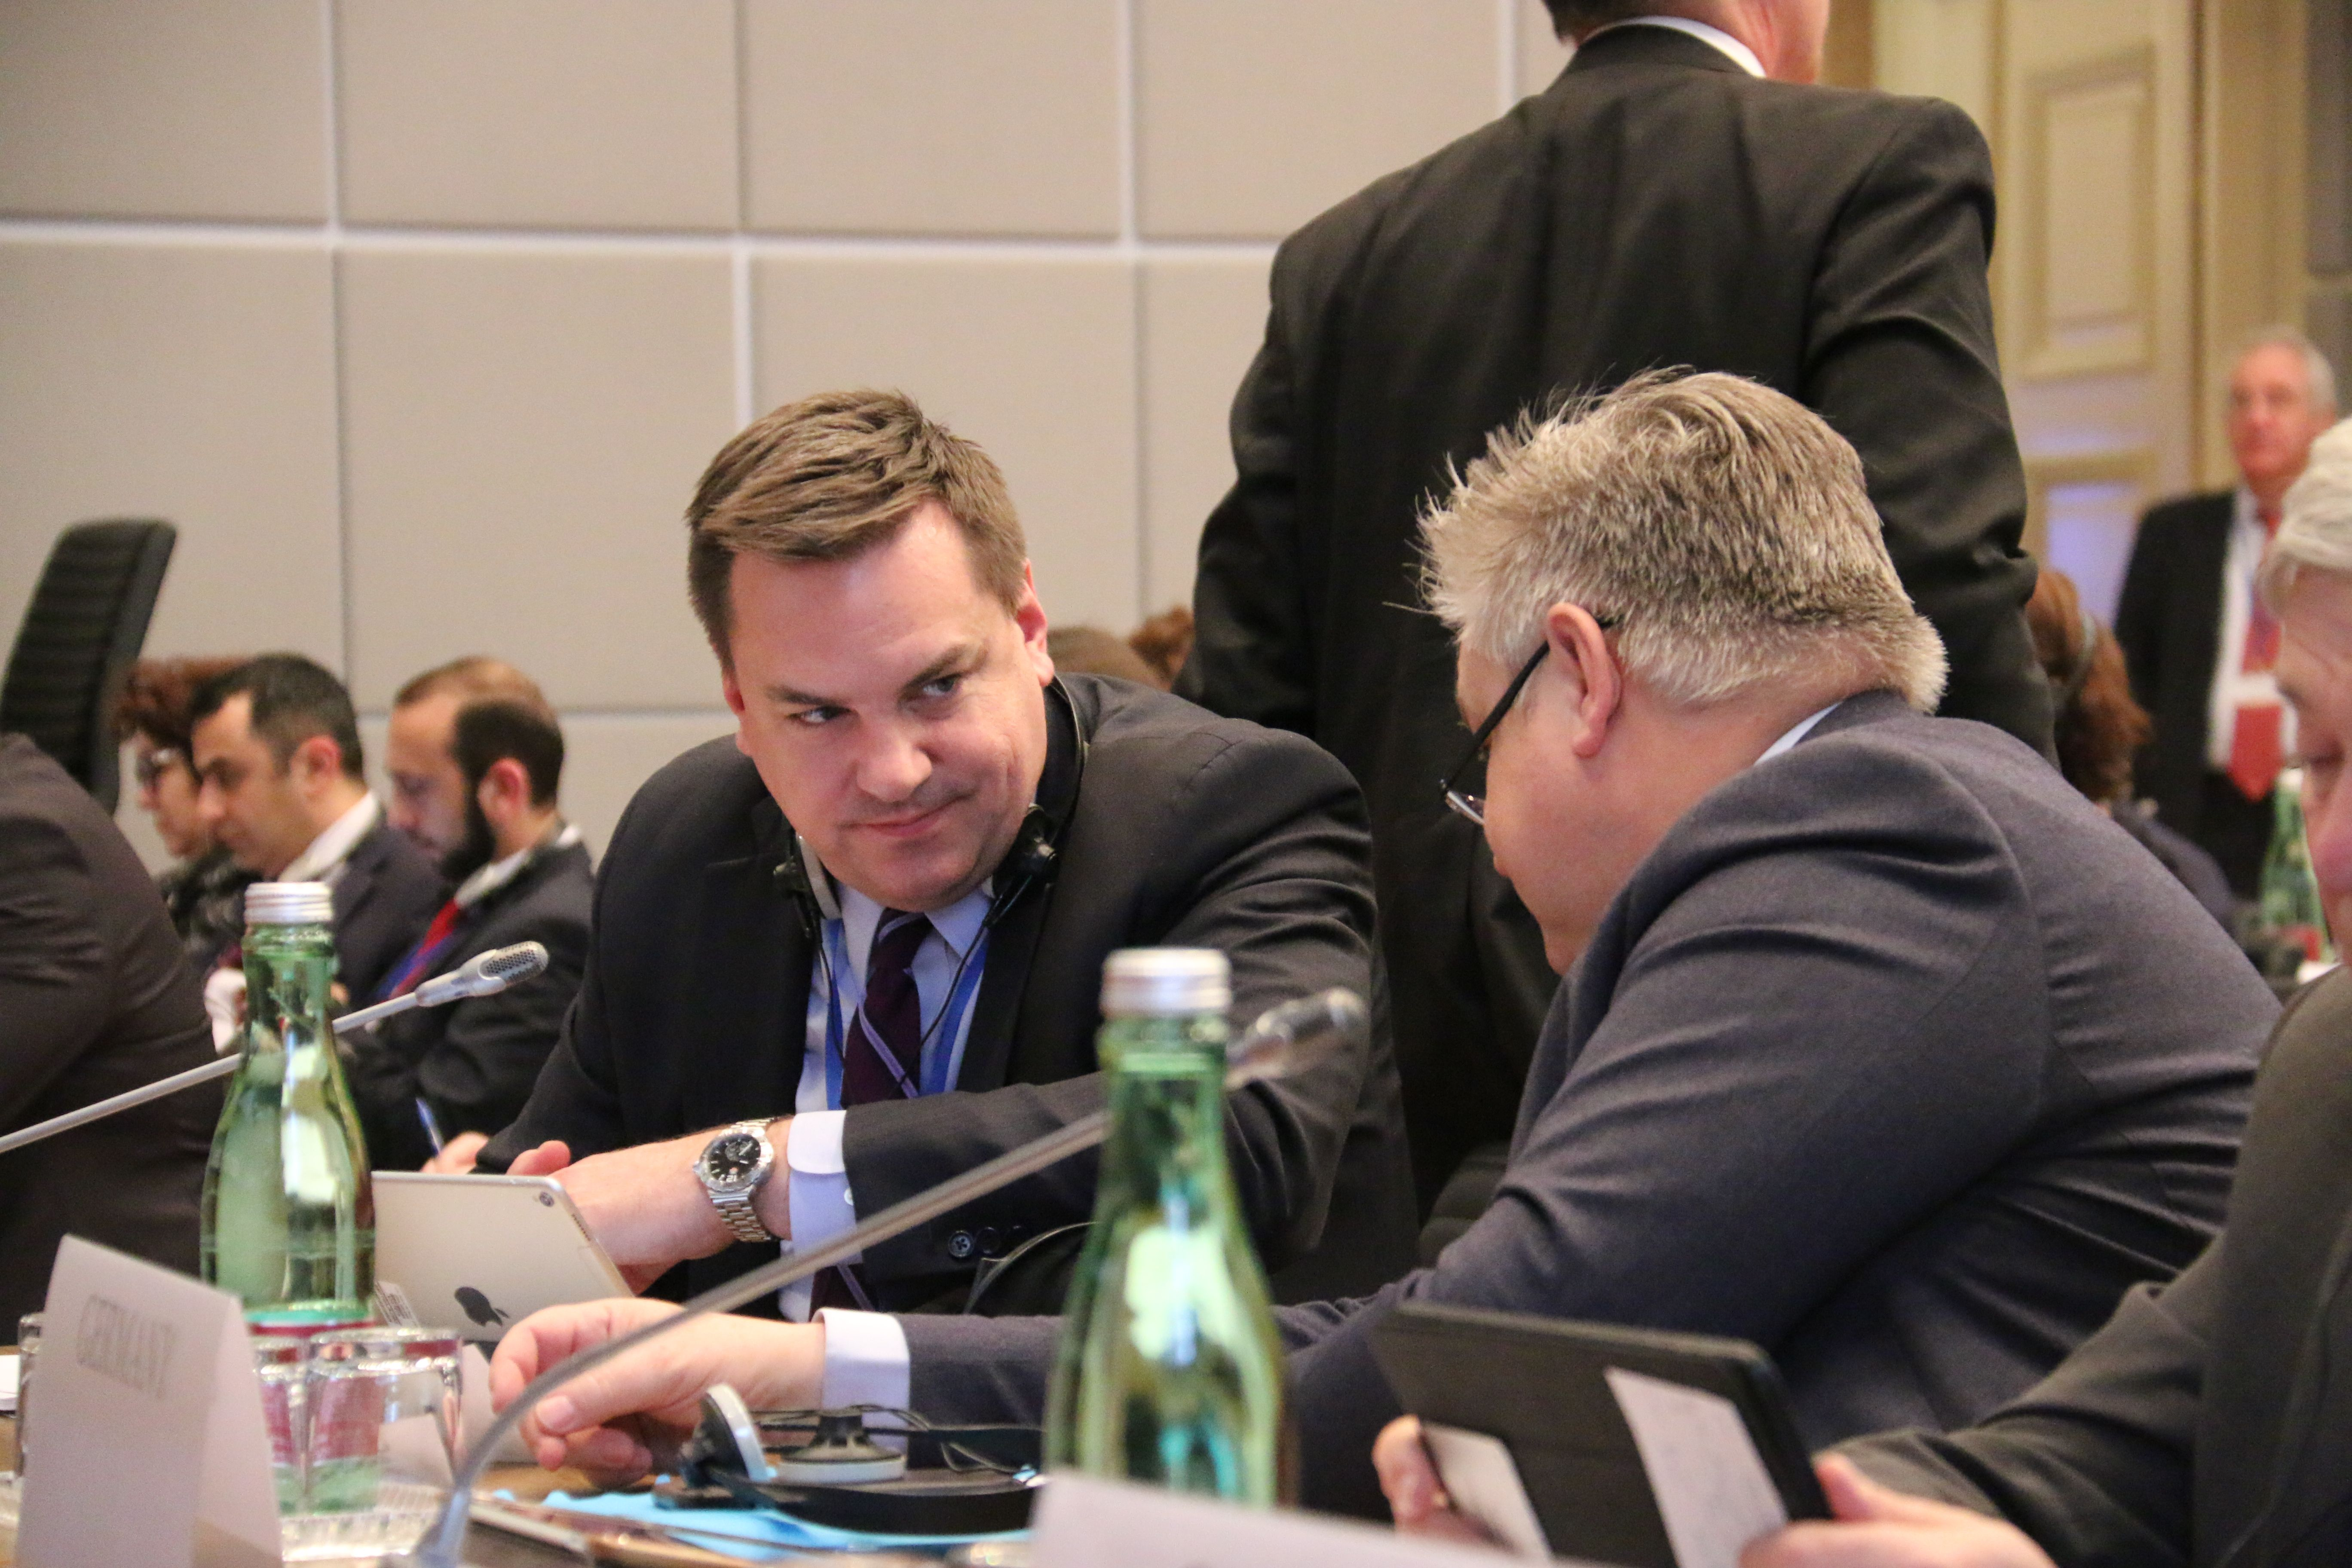 Helsinki Commissioner Rep. Hudson at 2018 OSCE PA Winter Meeting | Credit OSCE PA